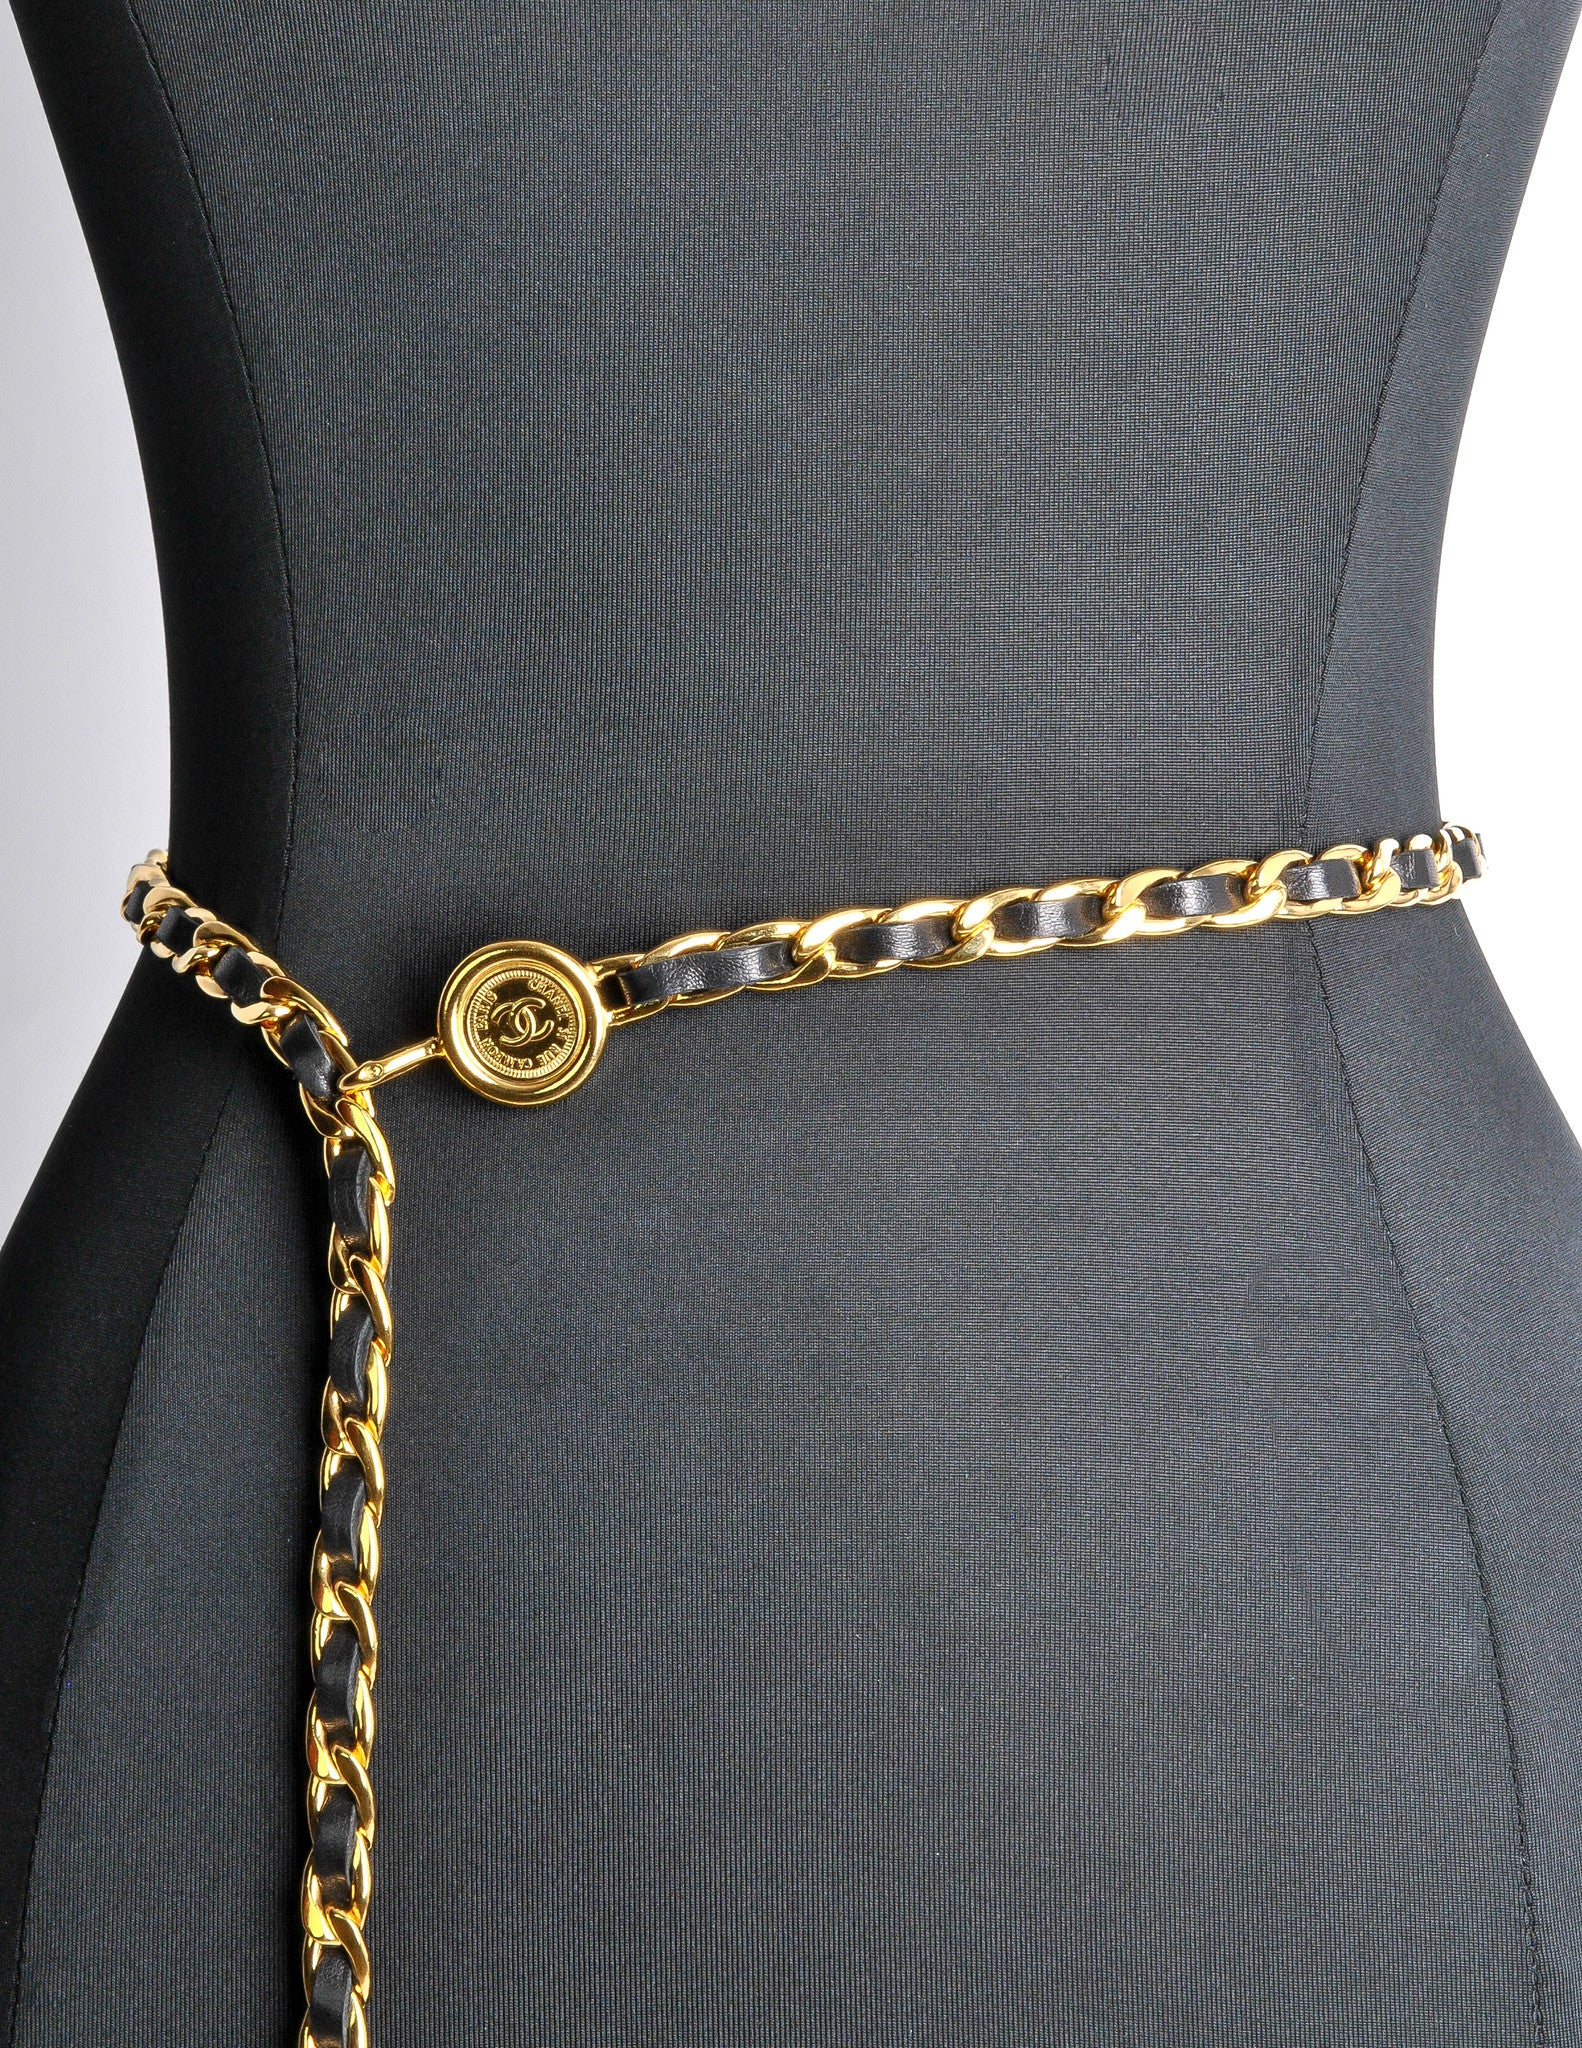 Chanel Vintage Black/Gold Leather Chain Belt - from ...